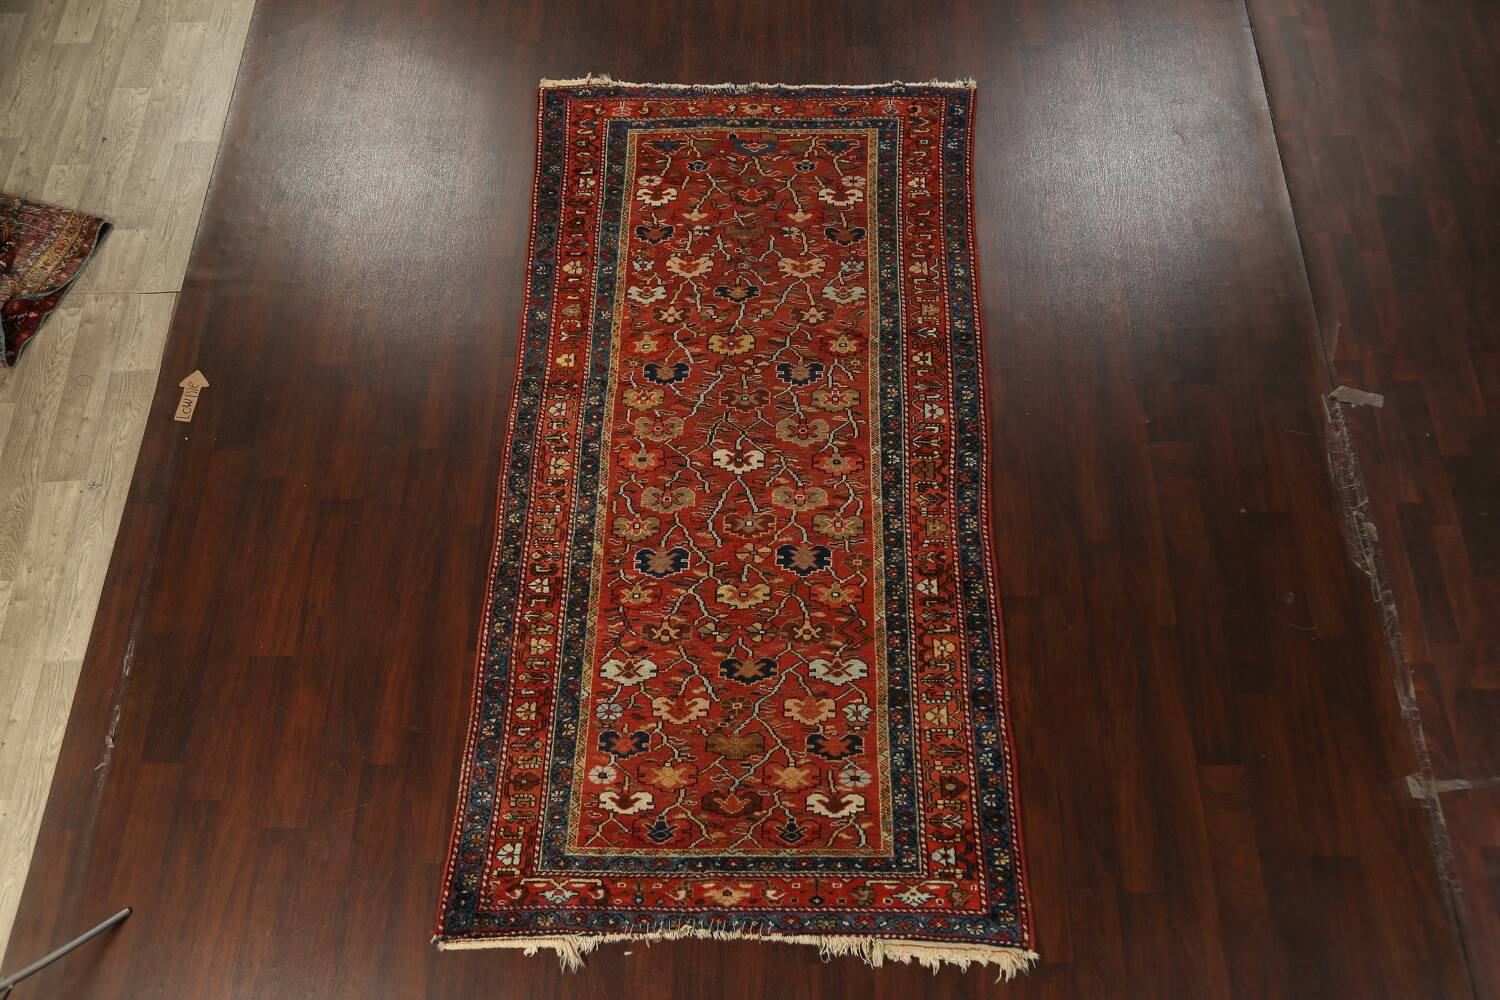 Pre-1900 Antique Vegetable Dye Sultanabad Persian Area Rug 5x10 image 2